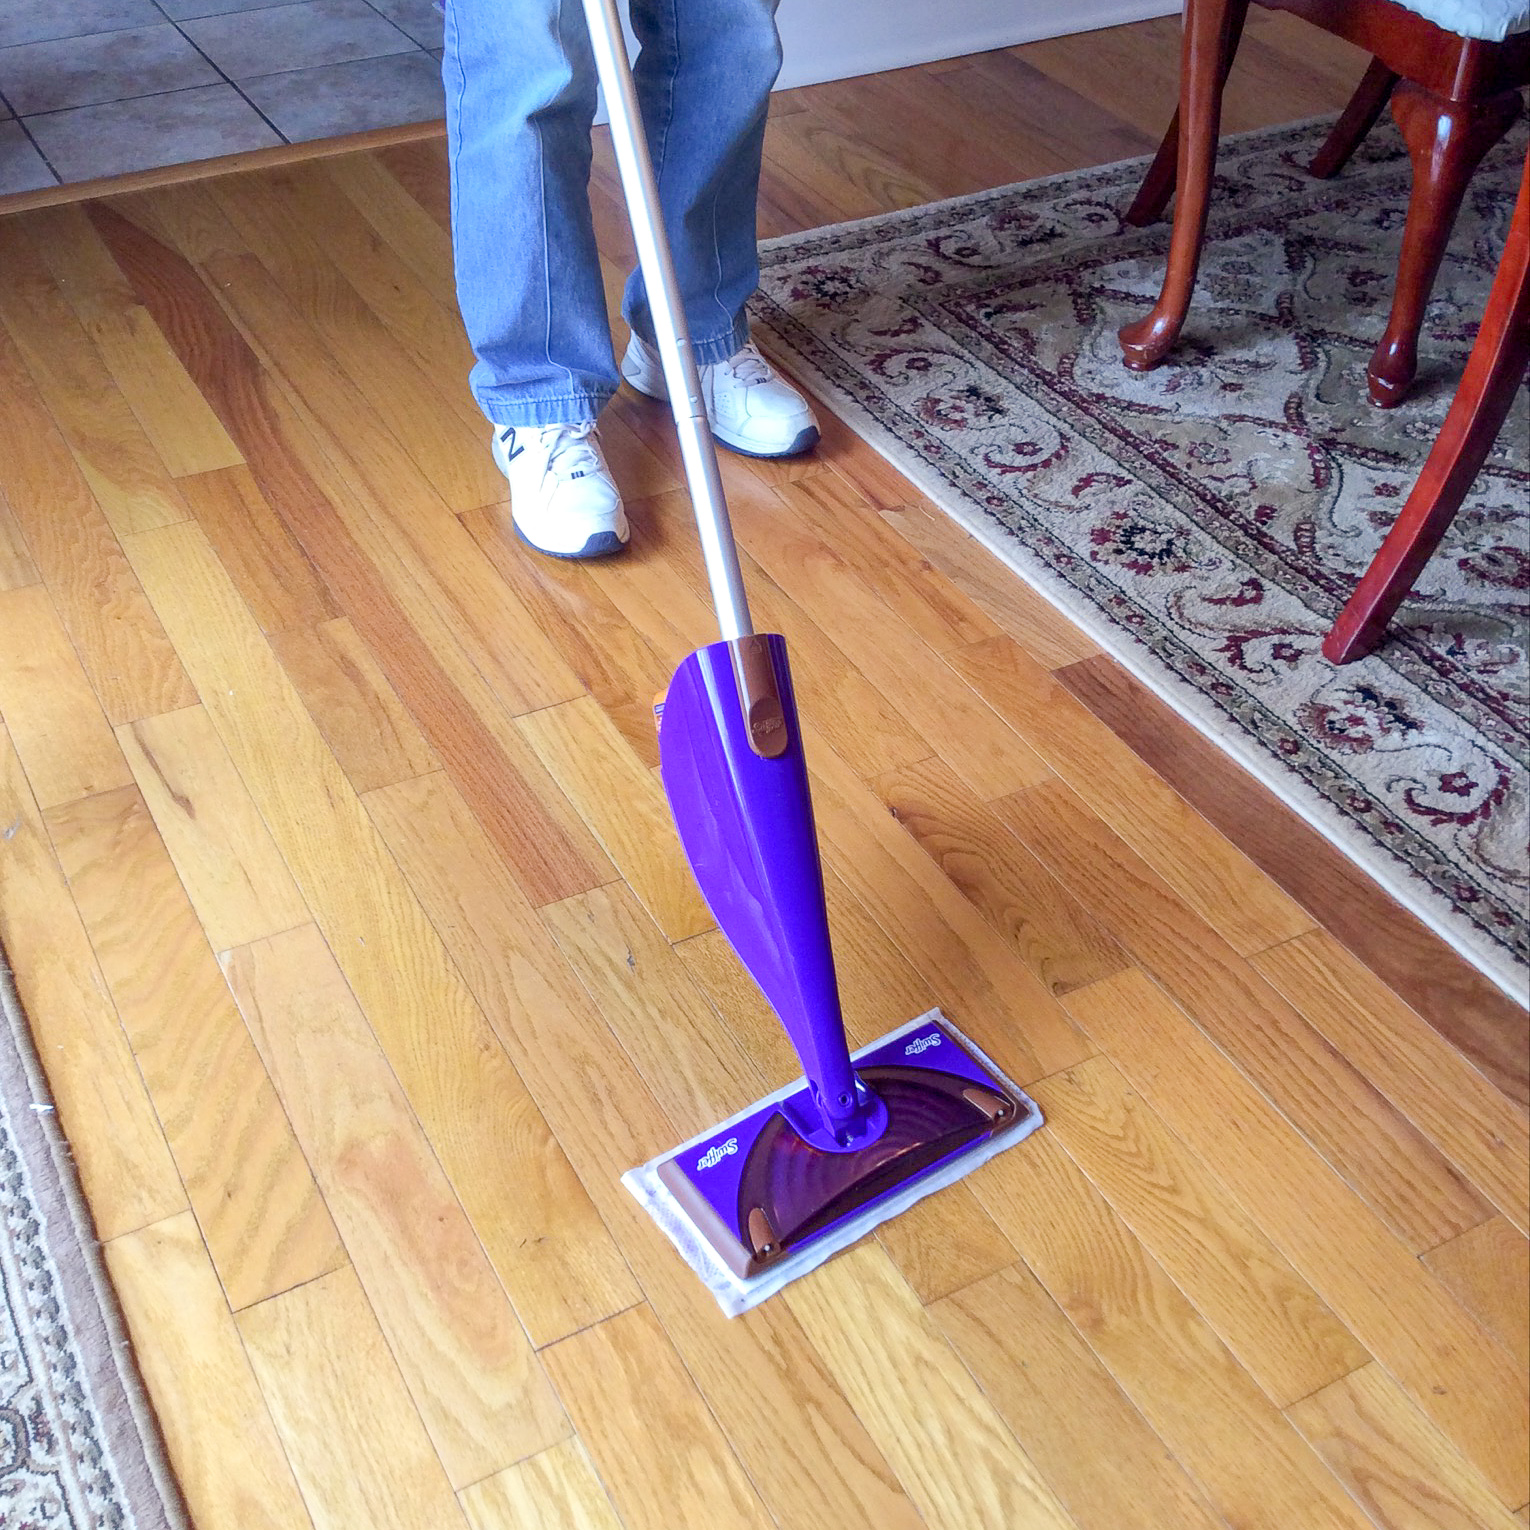 10 Tips for Better Spring Cleaning